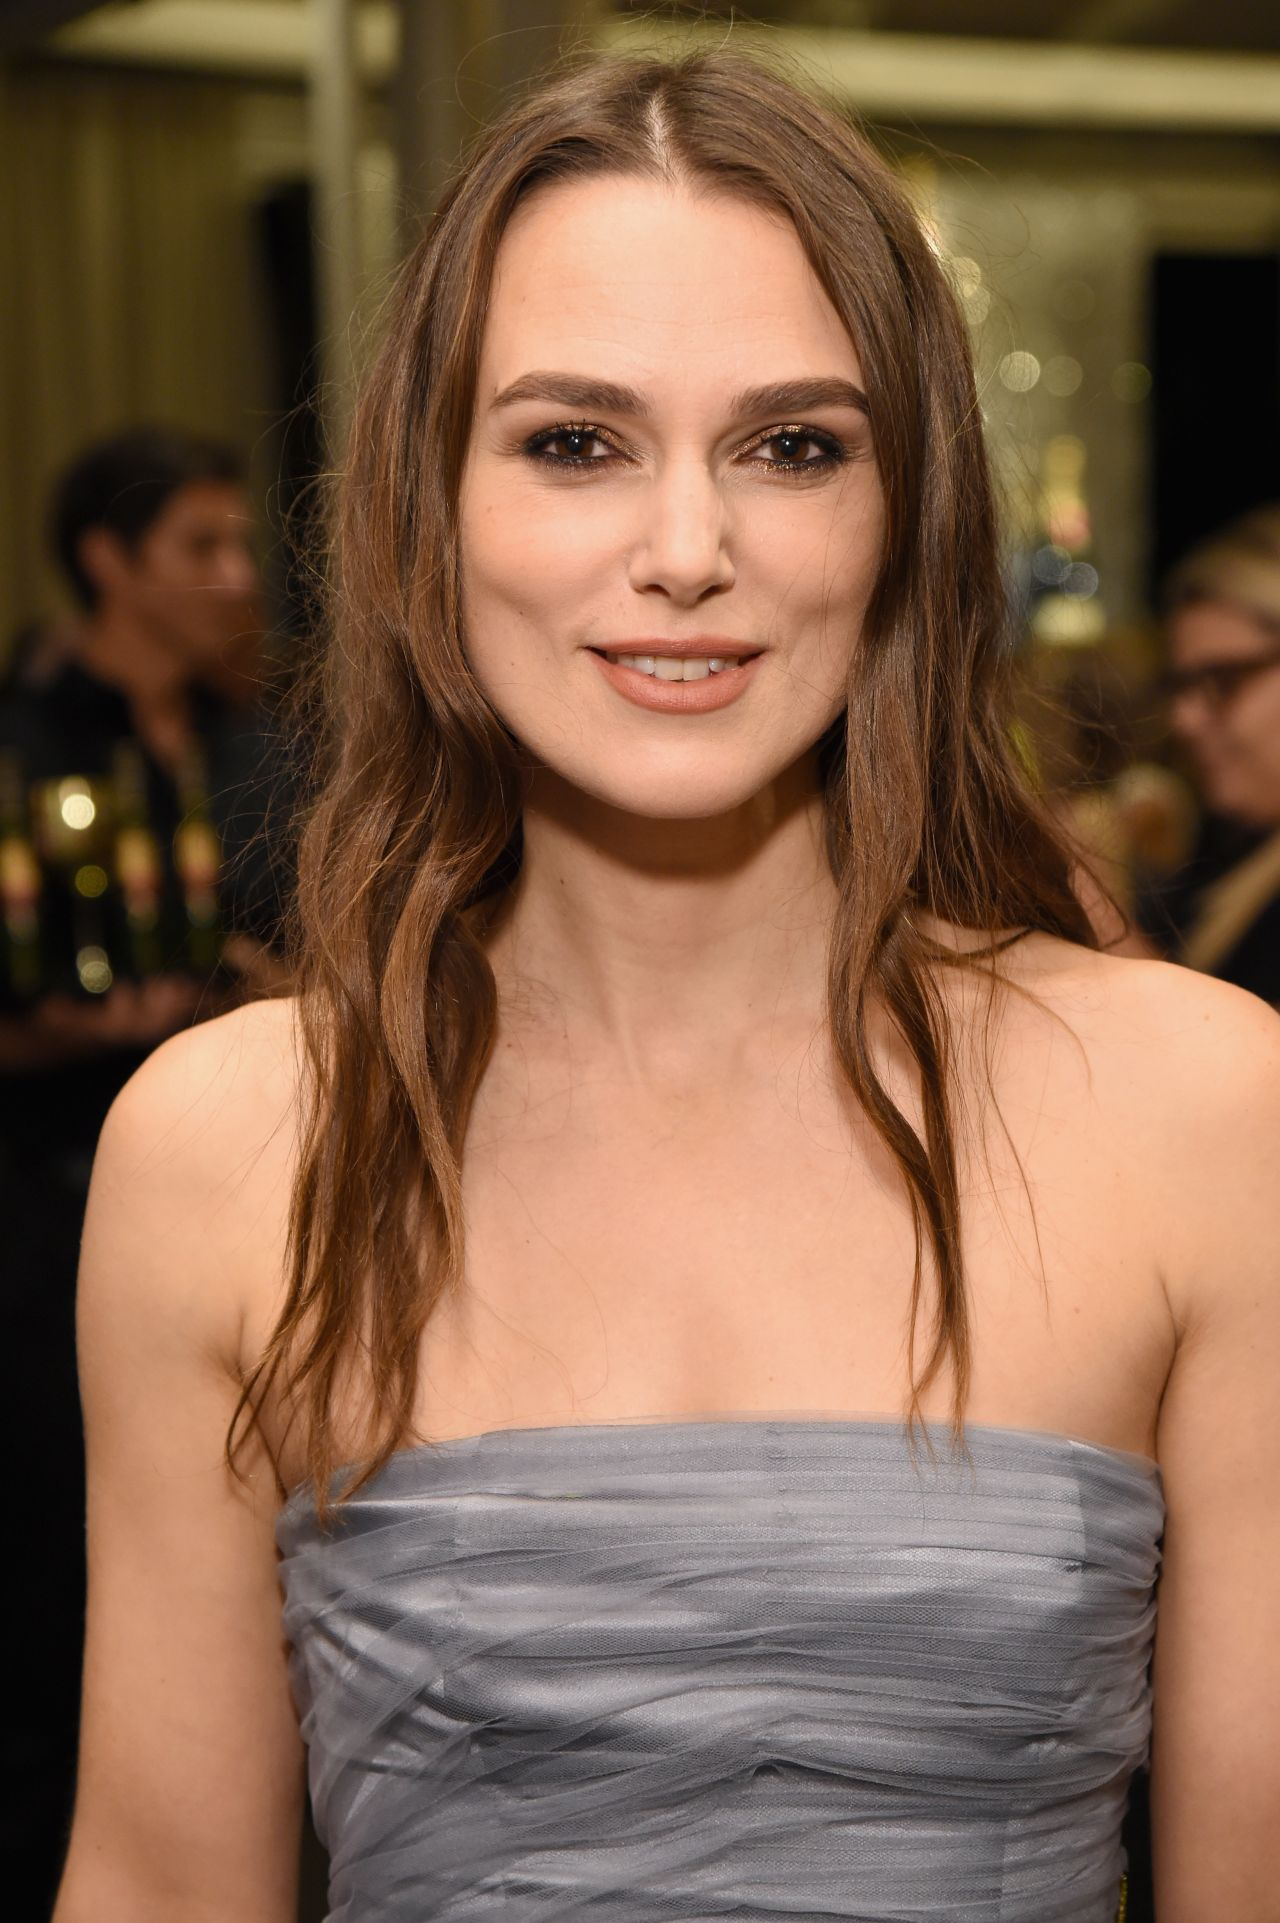 Today is Keira Knightley Day. Happy 35th Birthday to this gorgeous actress.